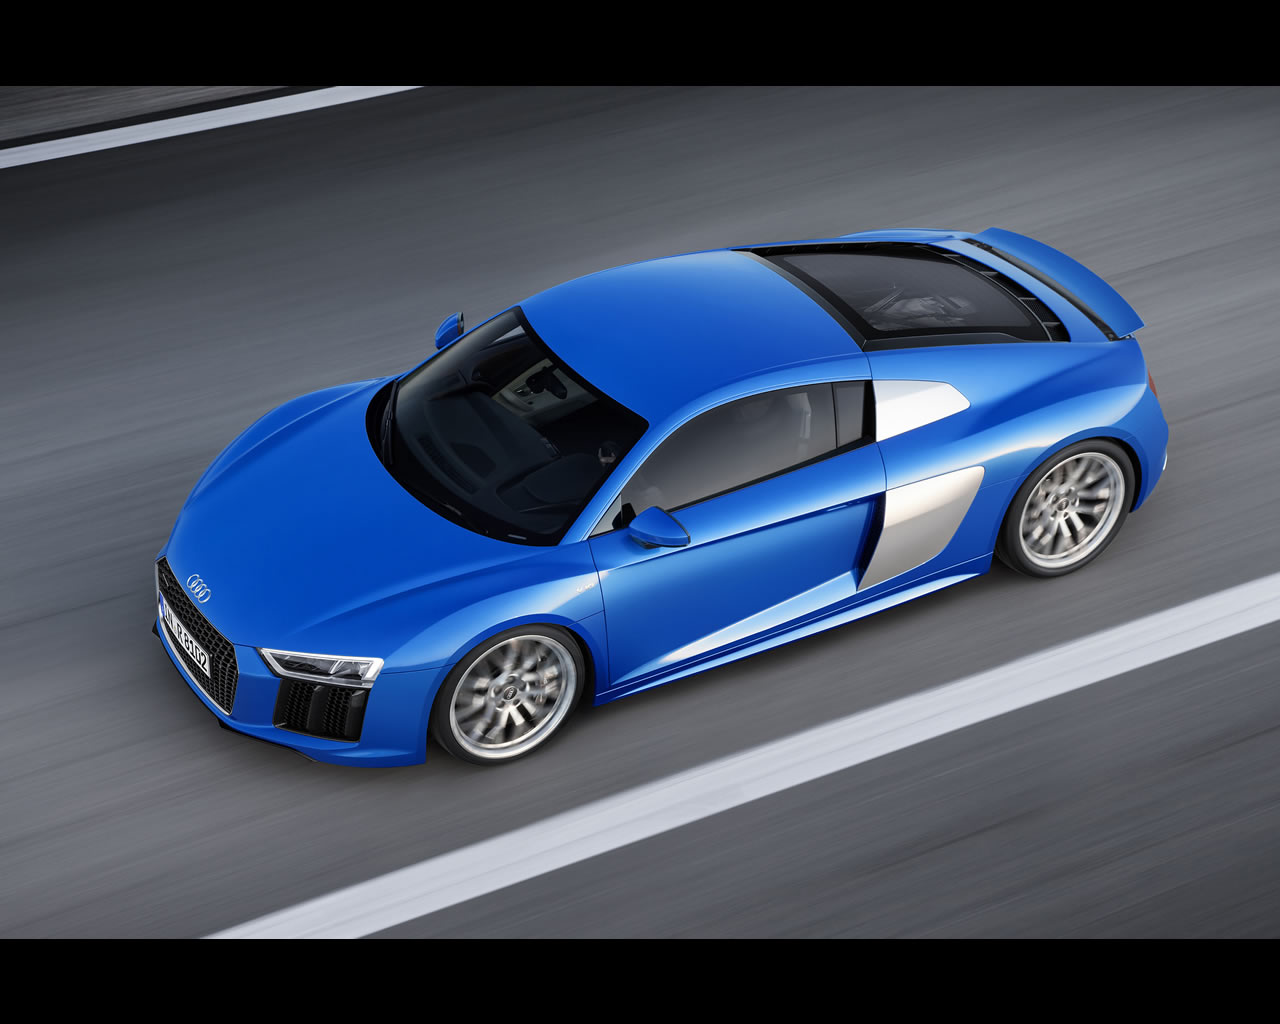 AUDI R8 V10, R8 V10 plus, R8 electric etron and motorsport R8 LMS